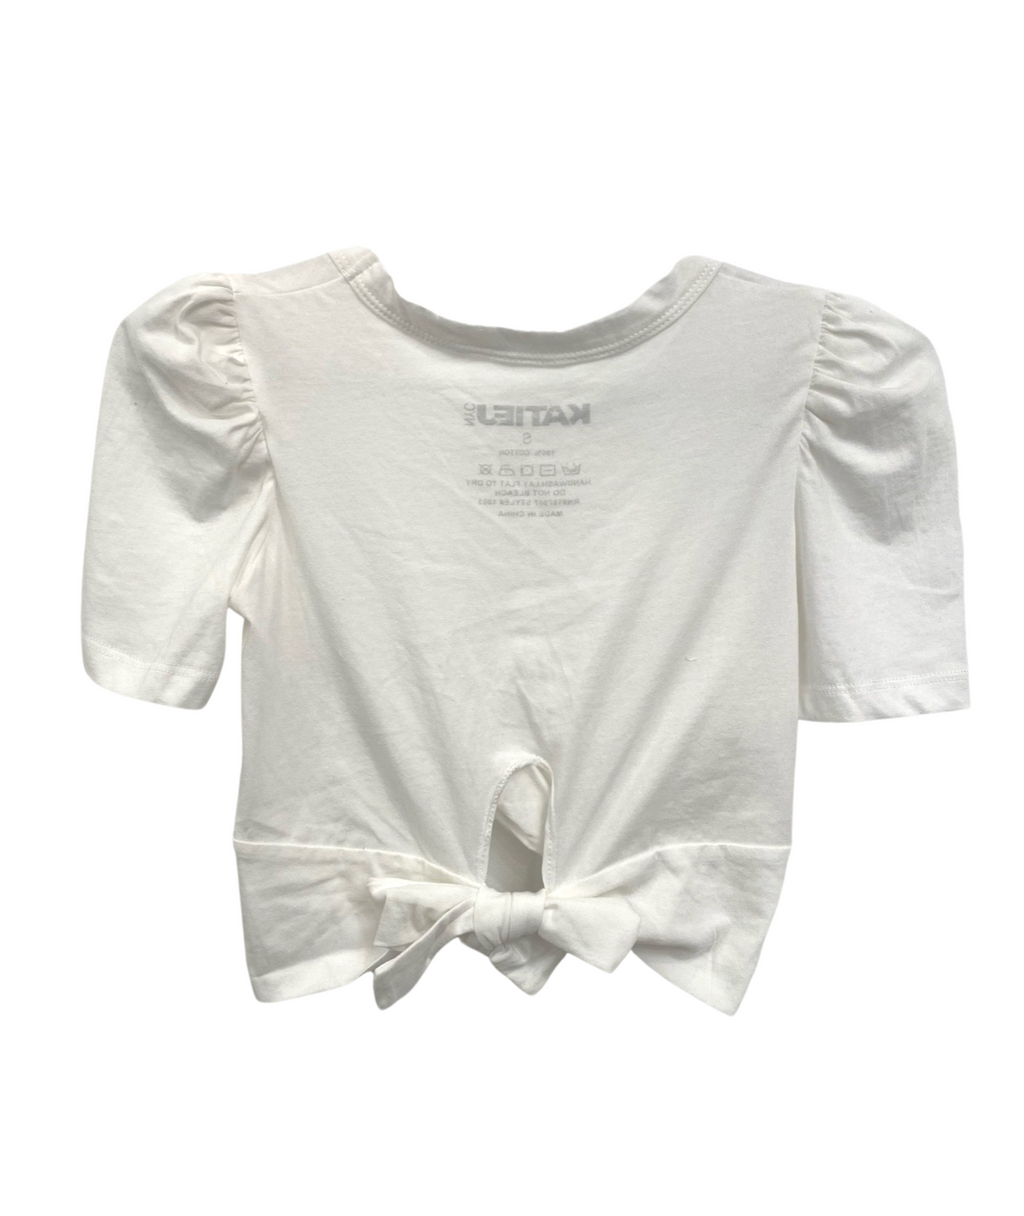 Katie J NYC Girls Paige White Puff Sleeve Tie Back Crop Top